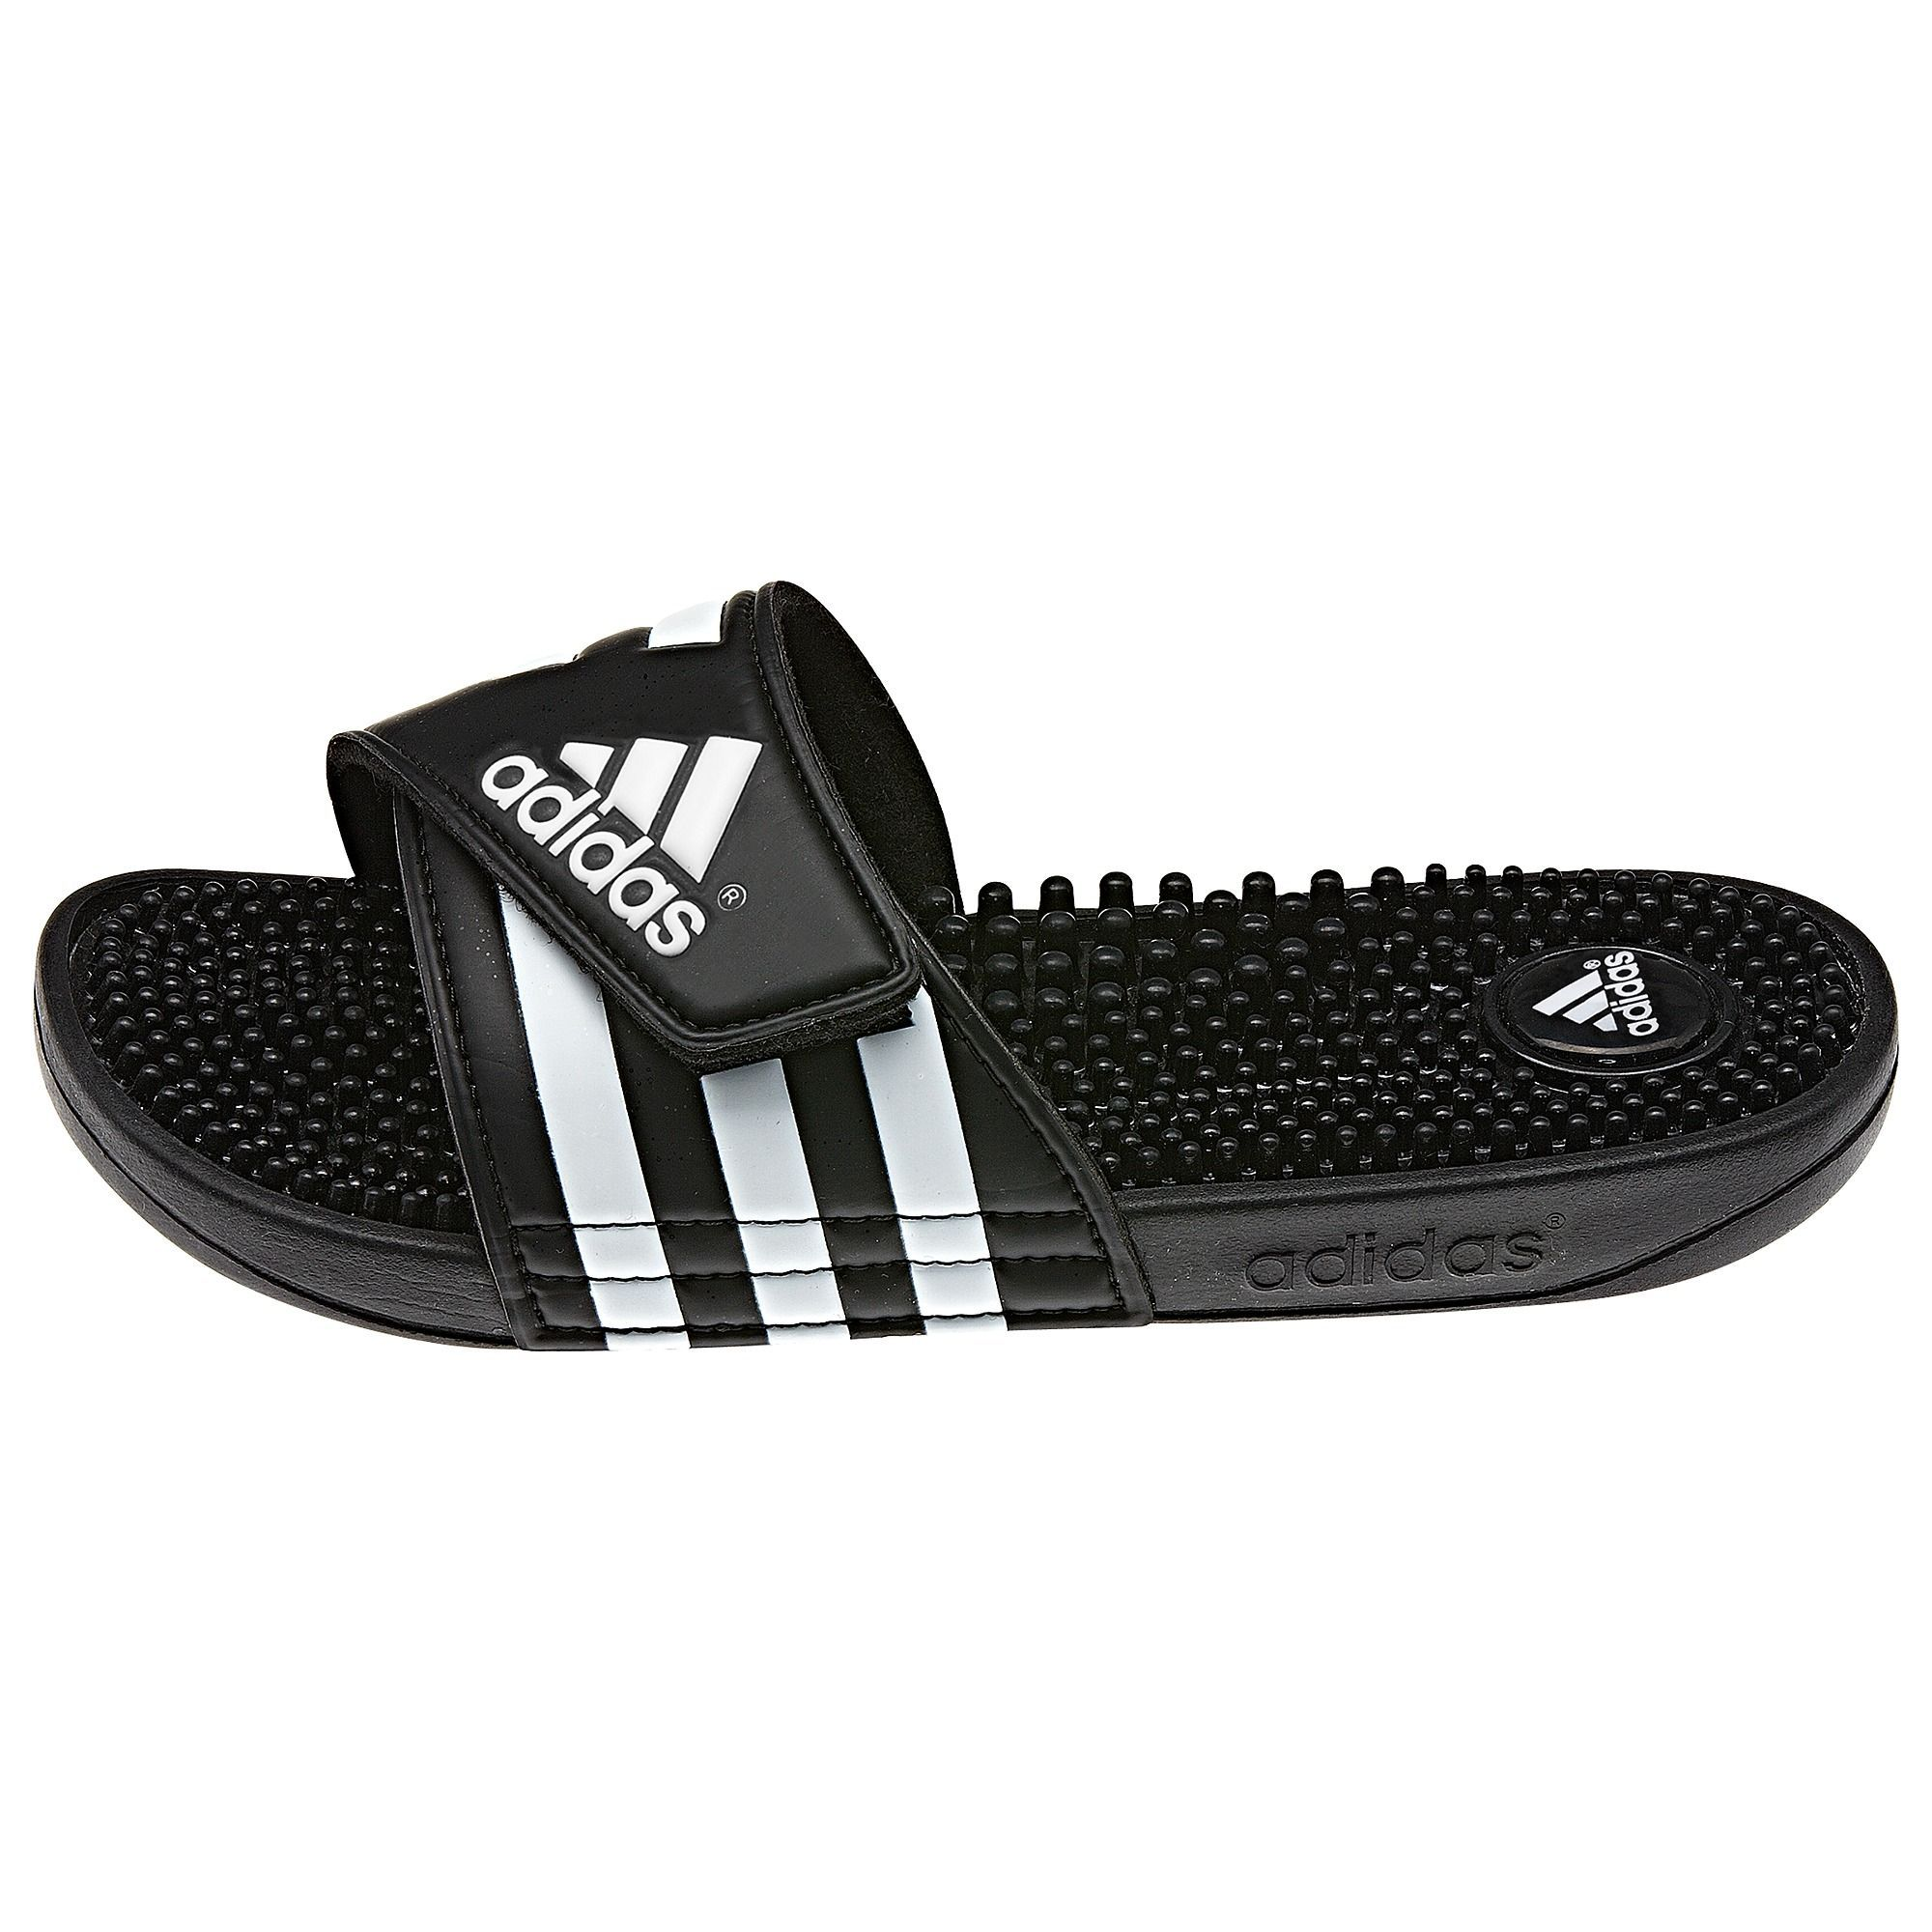 a9f1d66d131 Adidas Adissages in classic black   white. adidas - adissage Slides